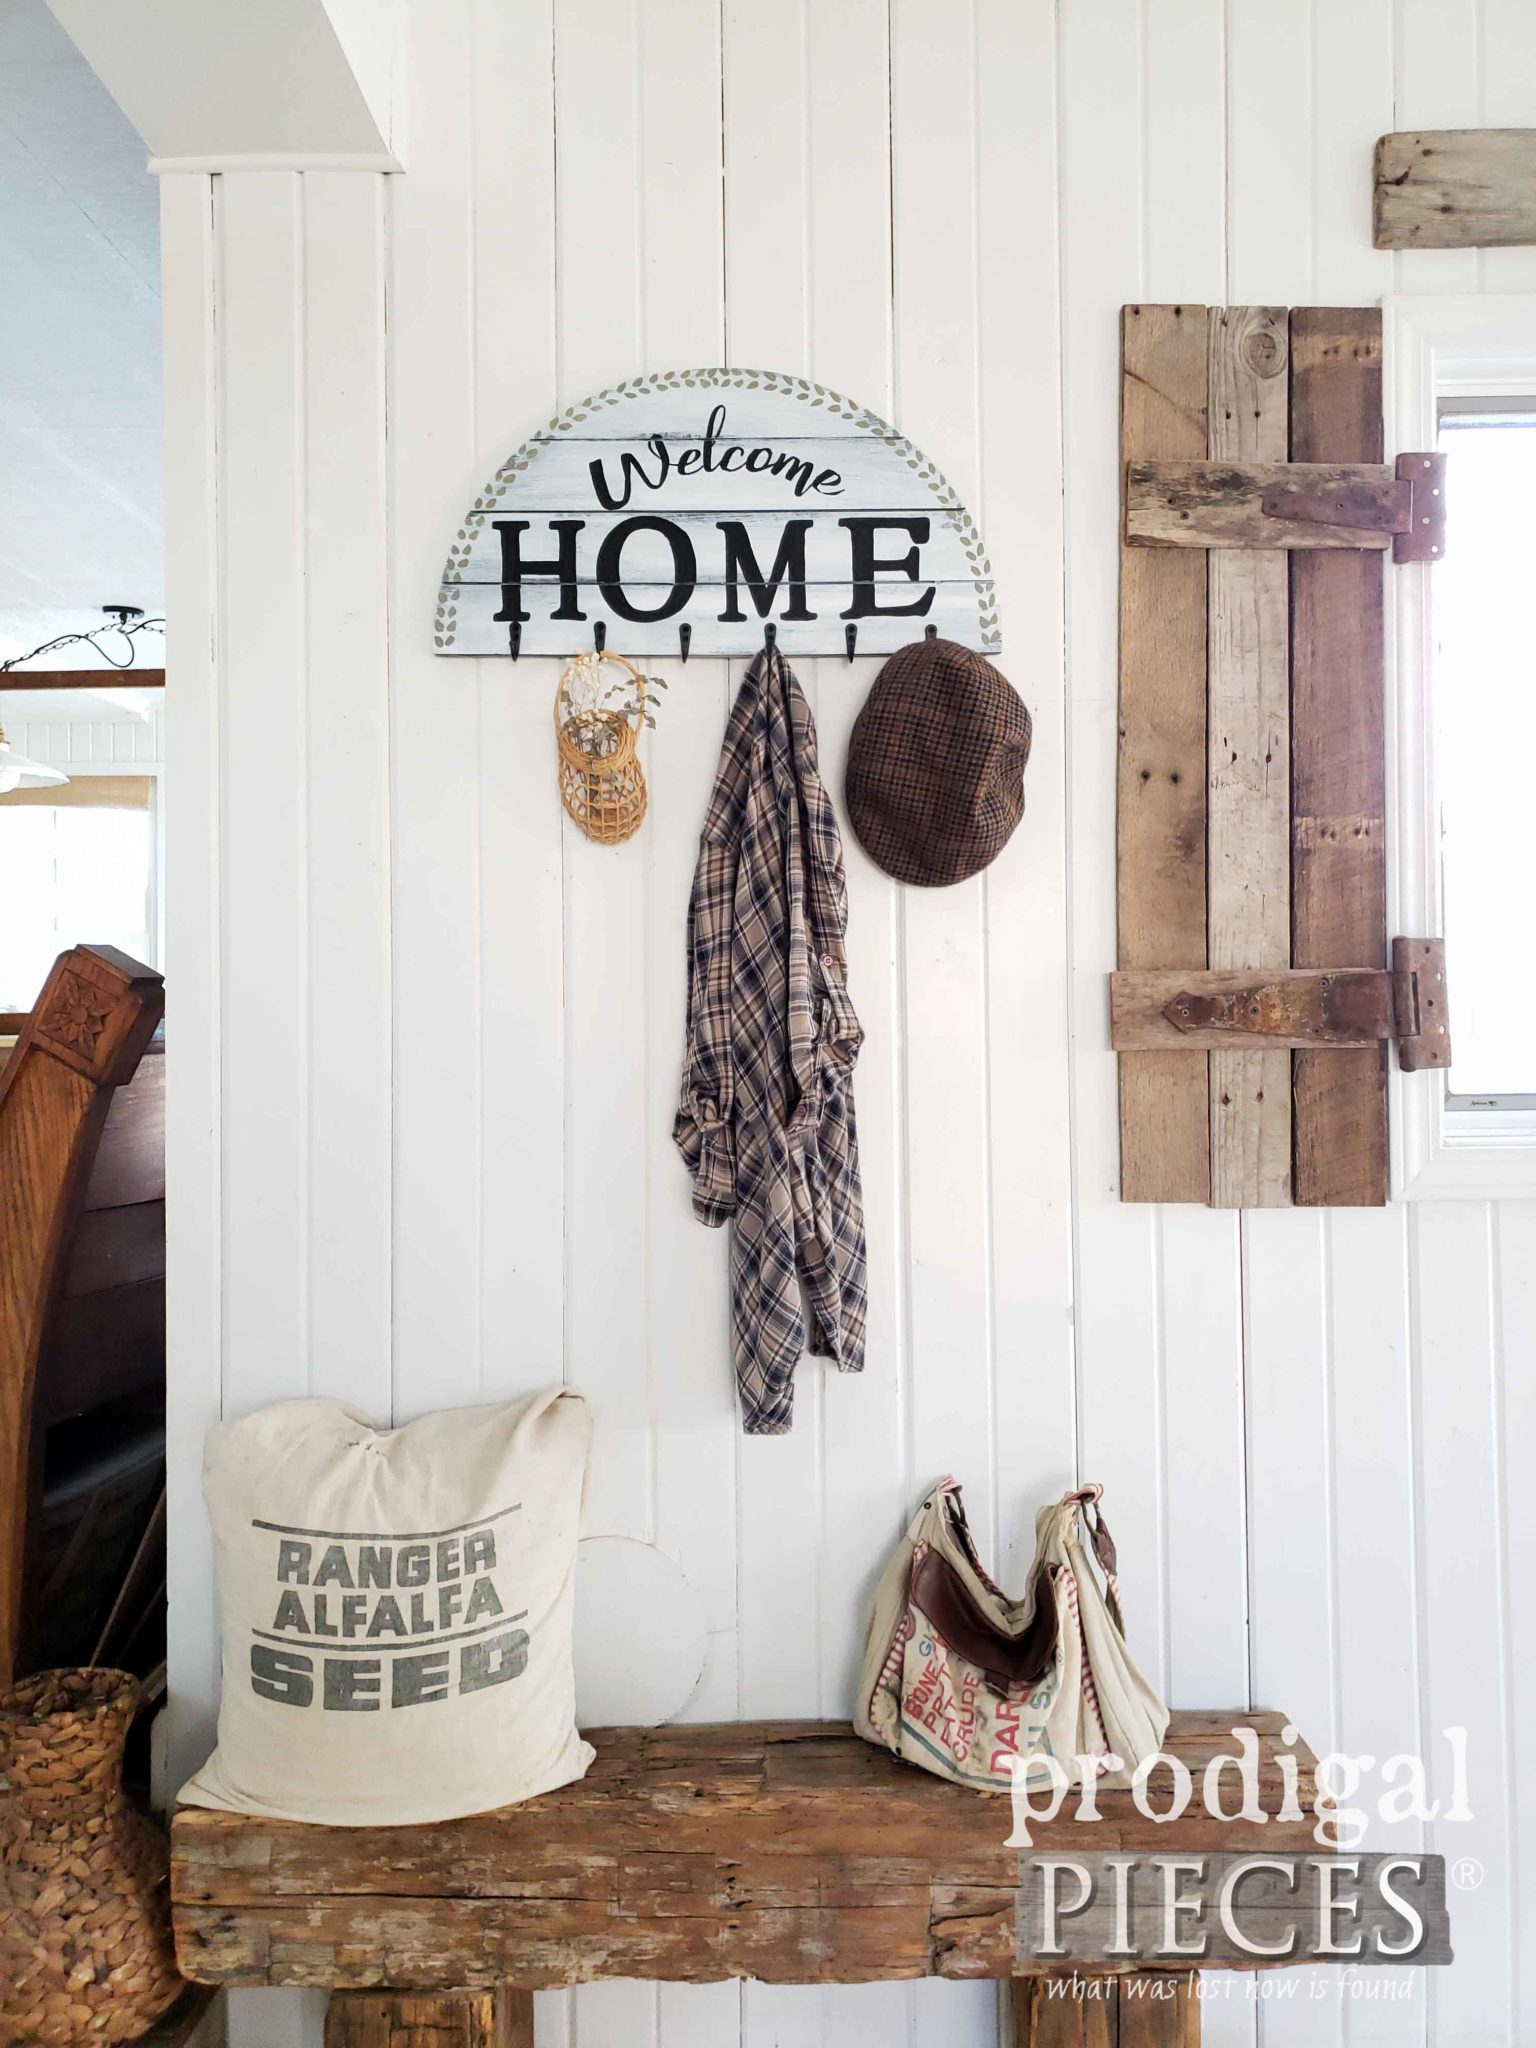 DIY Farmhouse Welcome Sign Coat Rack Created by Larissa of Prodigal Pieces | prodigalpieces.com #prodigalpieces #home #homedecor #farmhouse #handmade #homedecorideas #diy